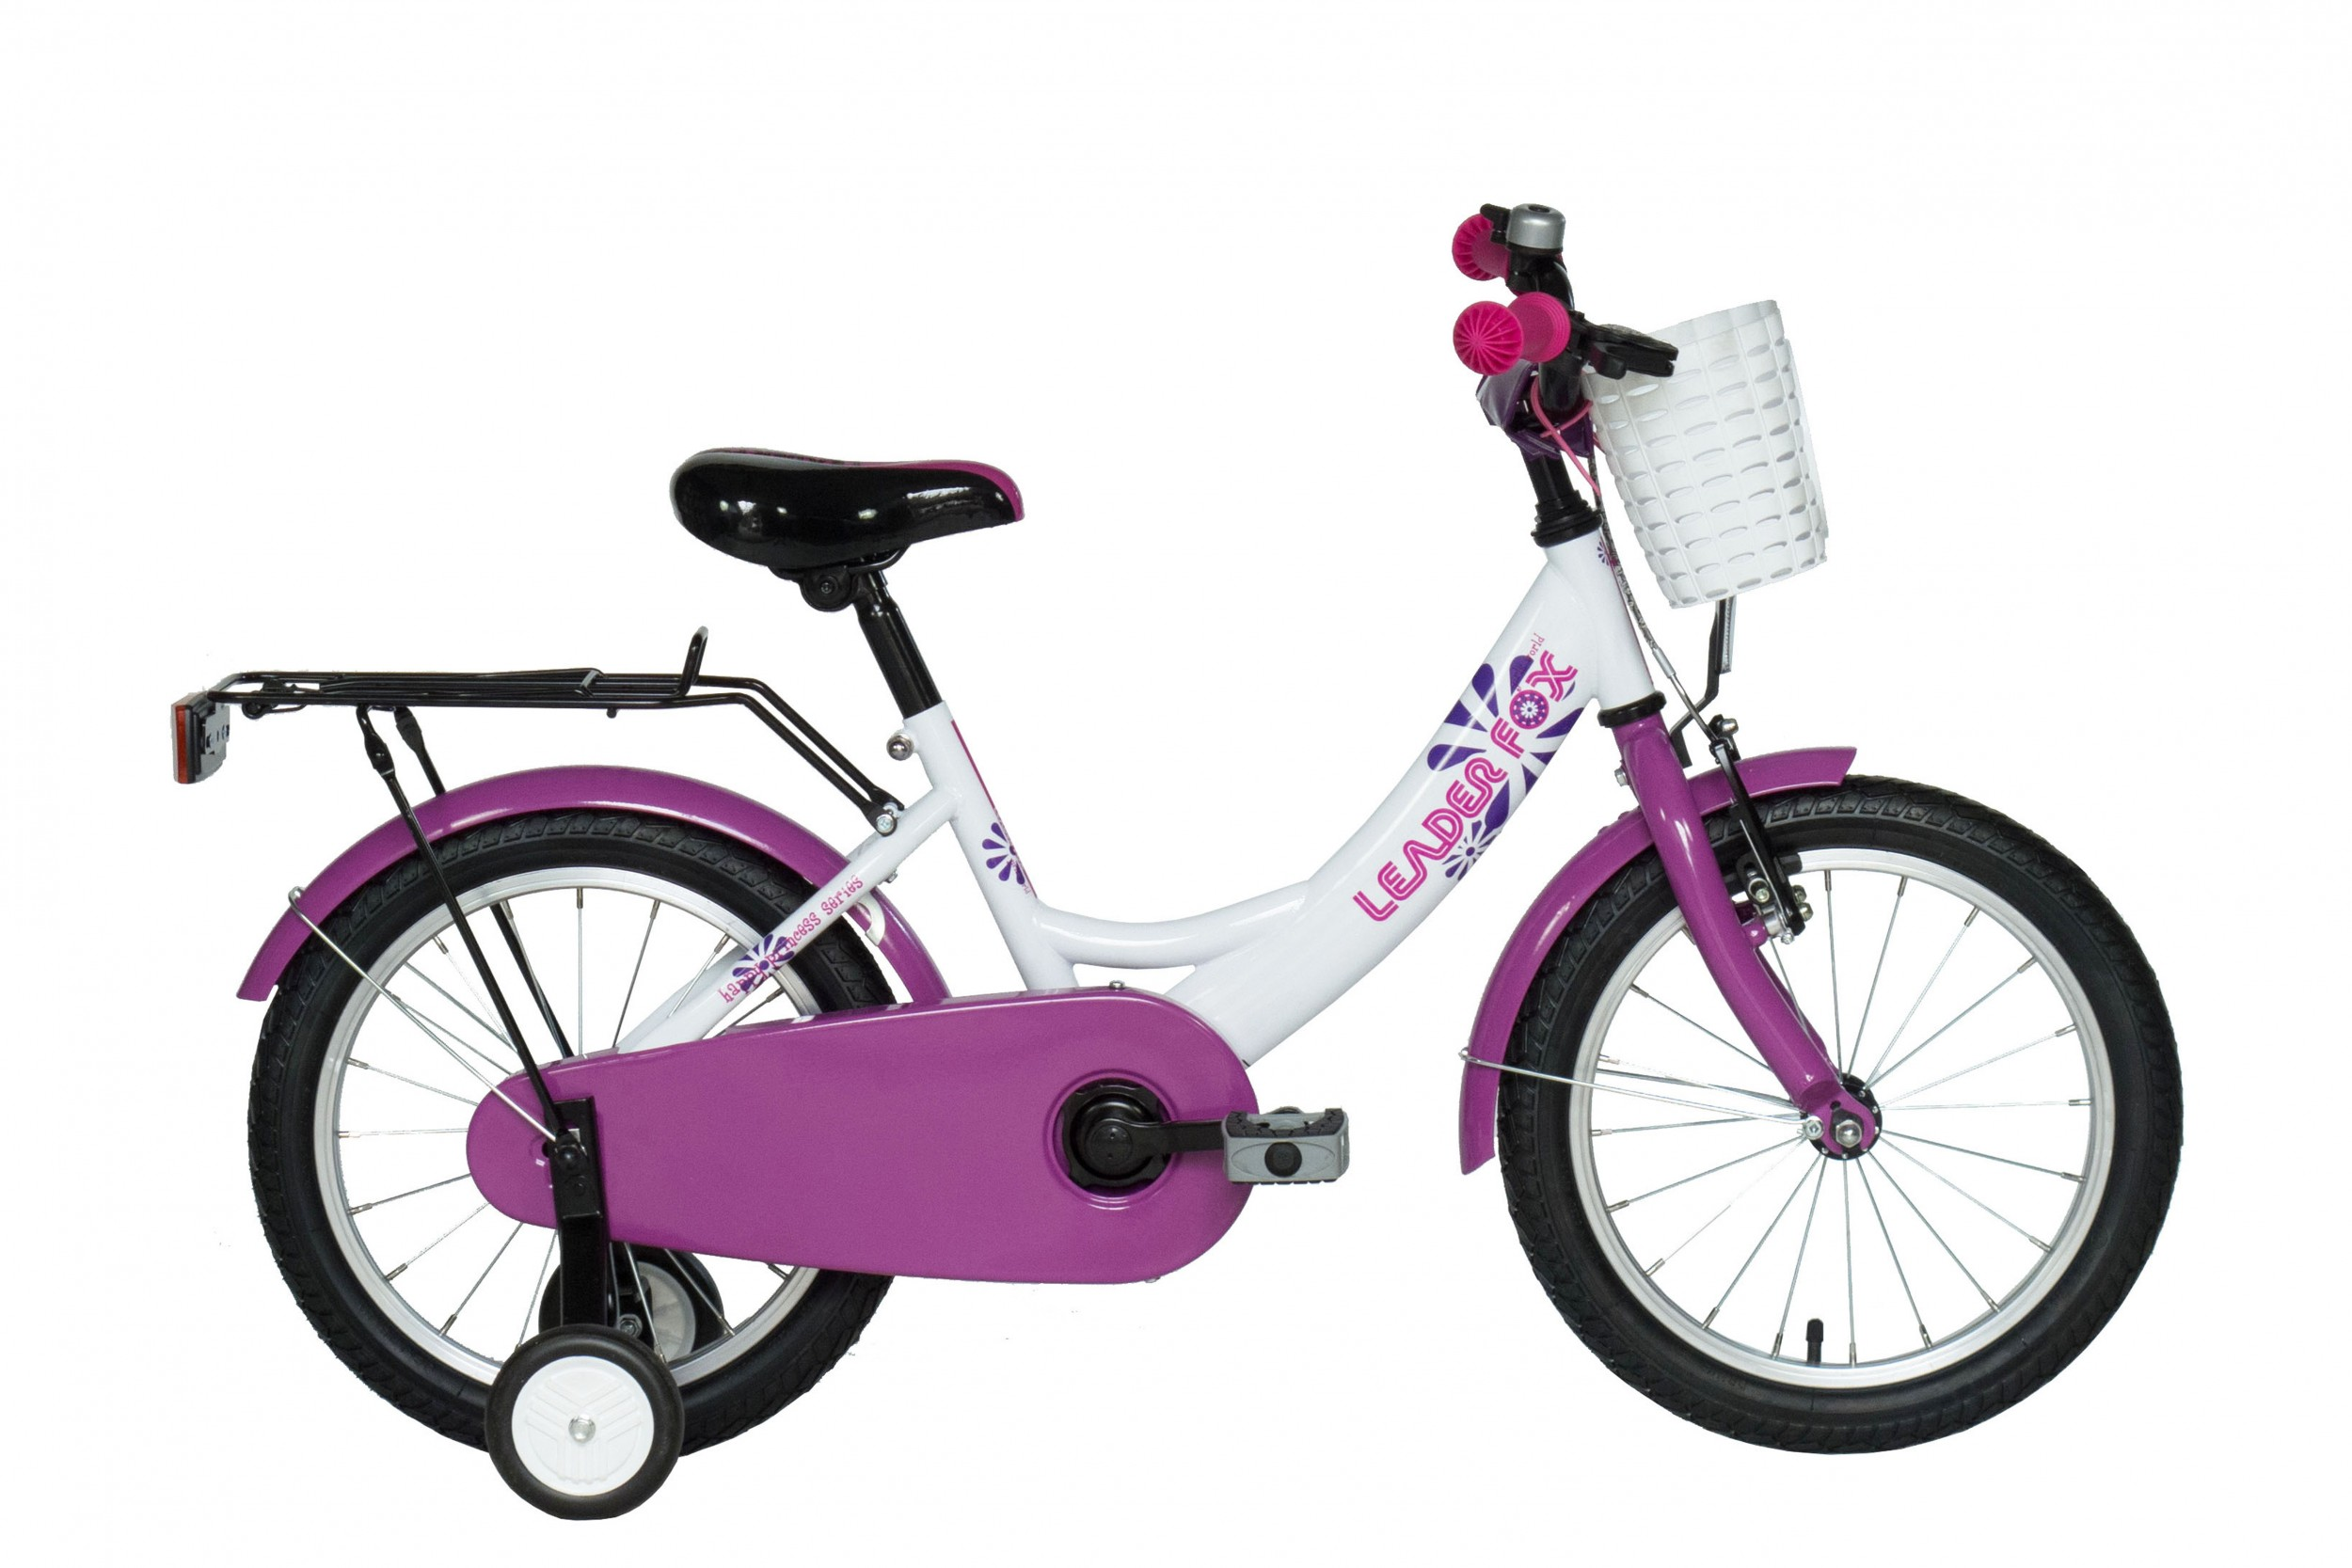 Leader Fox Pony Girls Bicycle 16 Inch 23cm - White